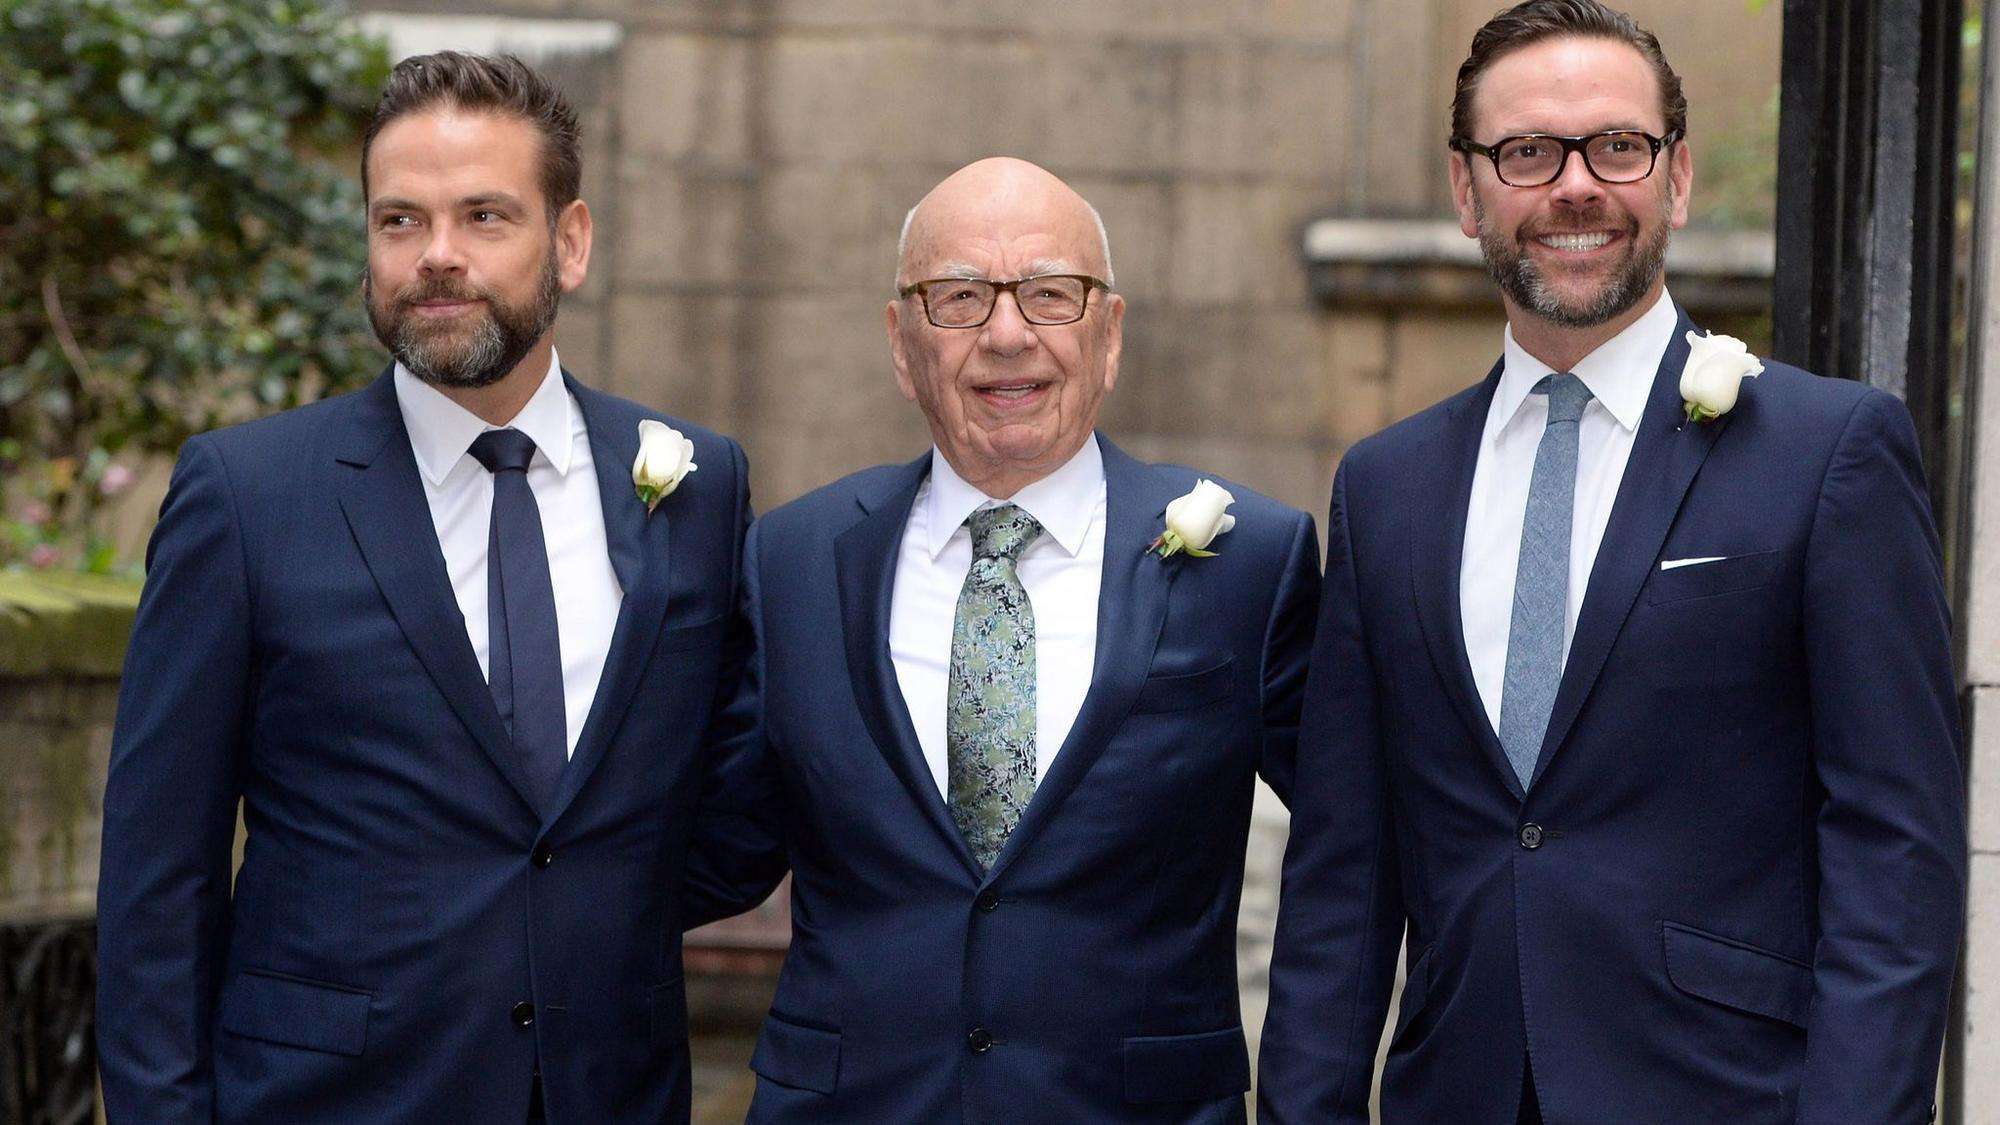 Rupert Murdoch's Fox downsizes, forges a different path in tumultuous media world